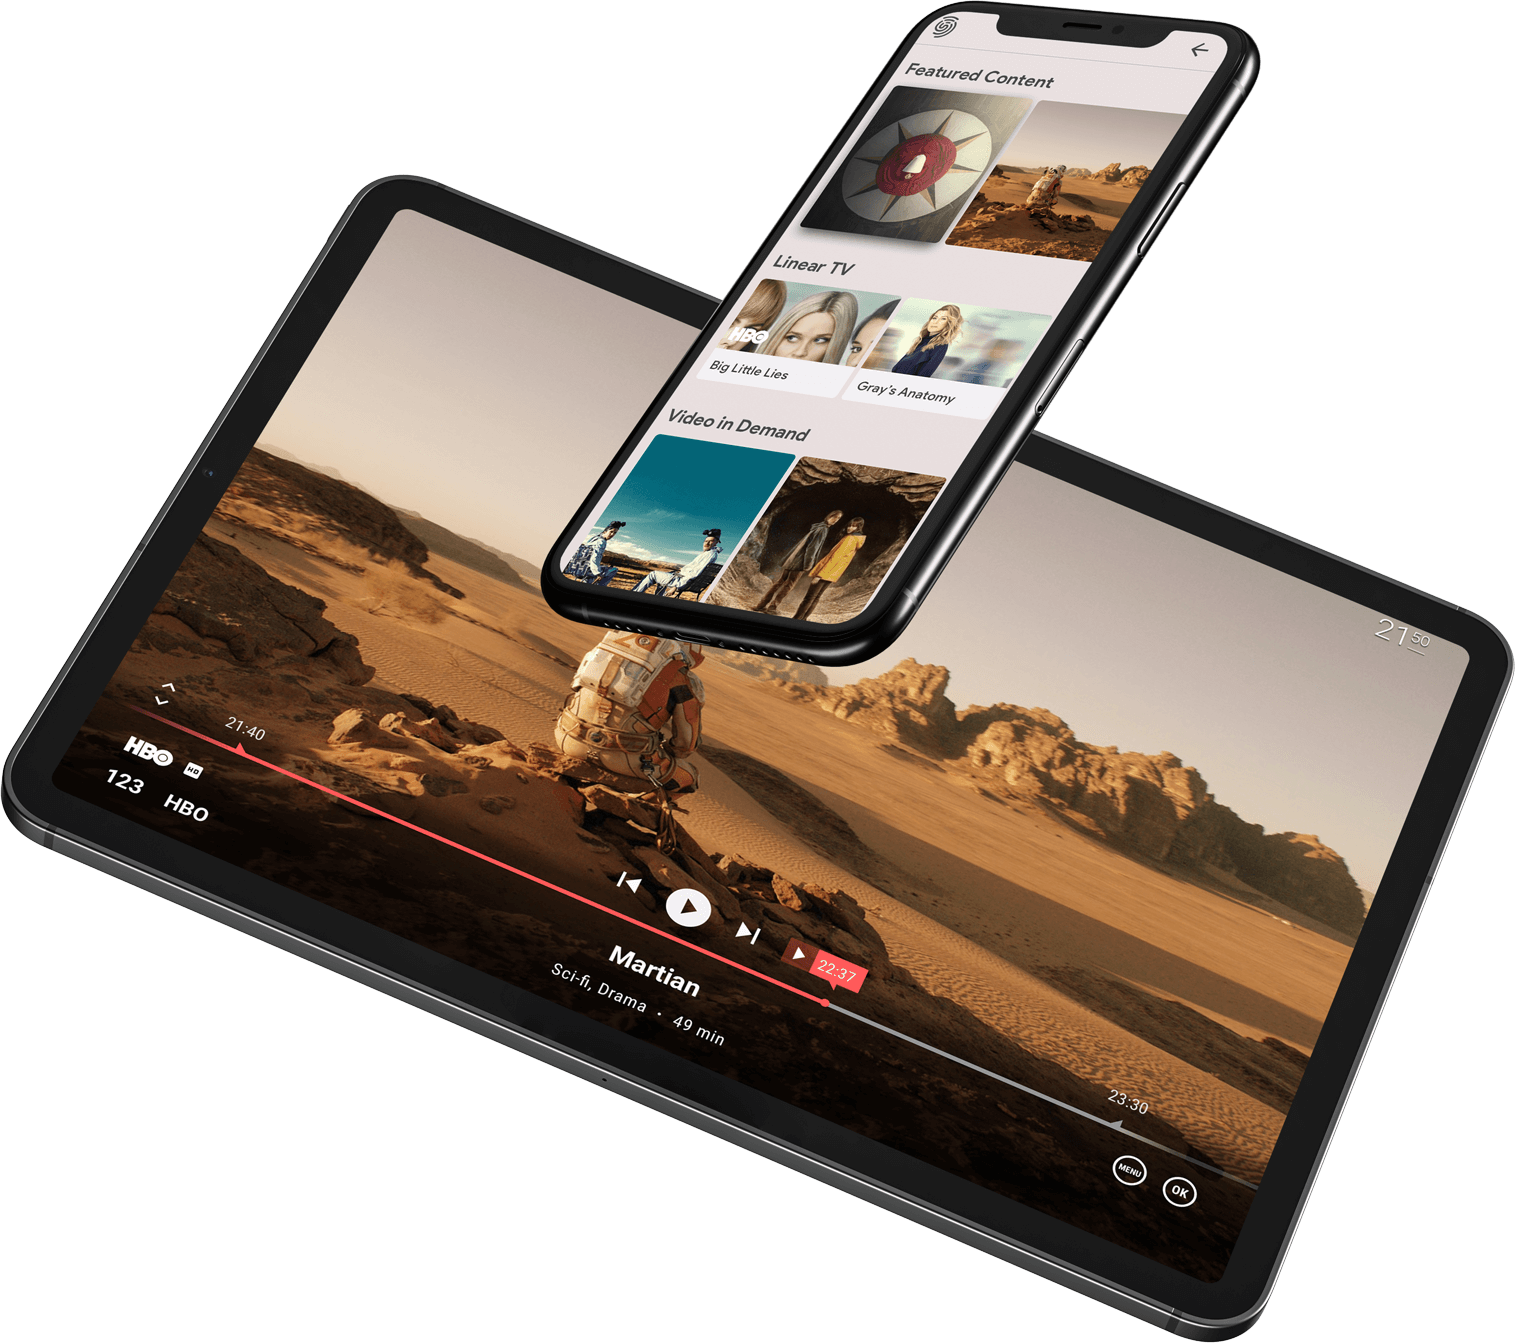 UniqCast Turnkey Solution new approach to organize video service in mobile networks, enabling MNOs to utilize the network and get new revenues